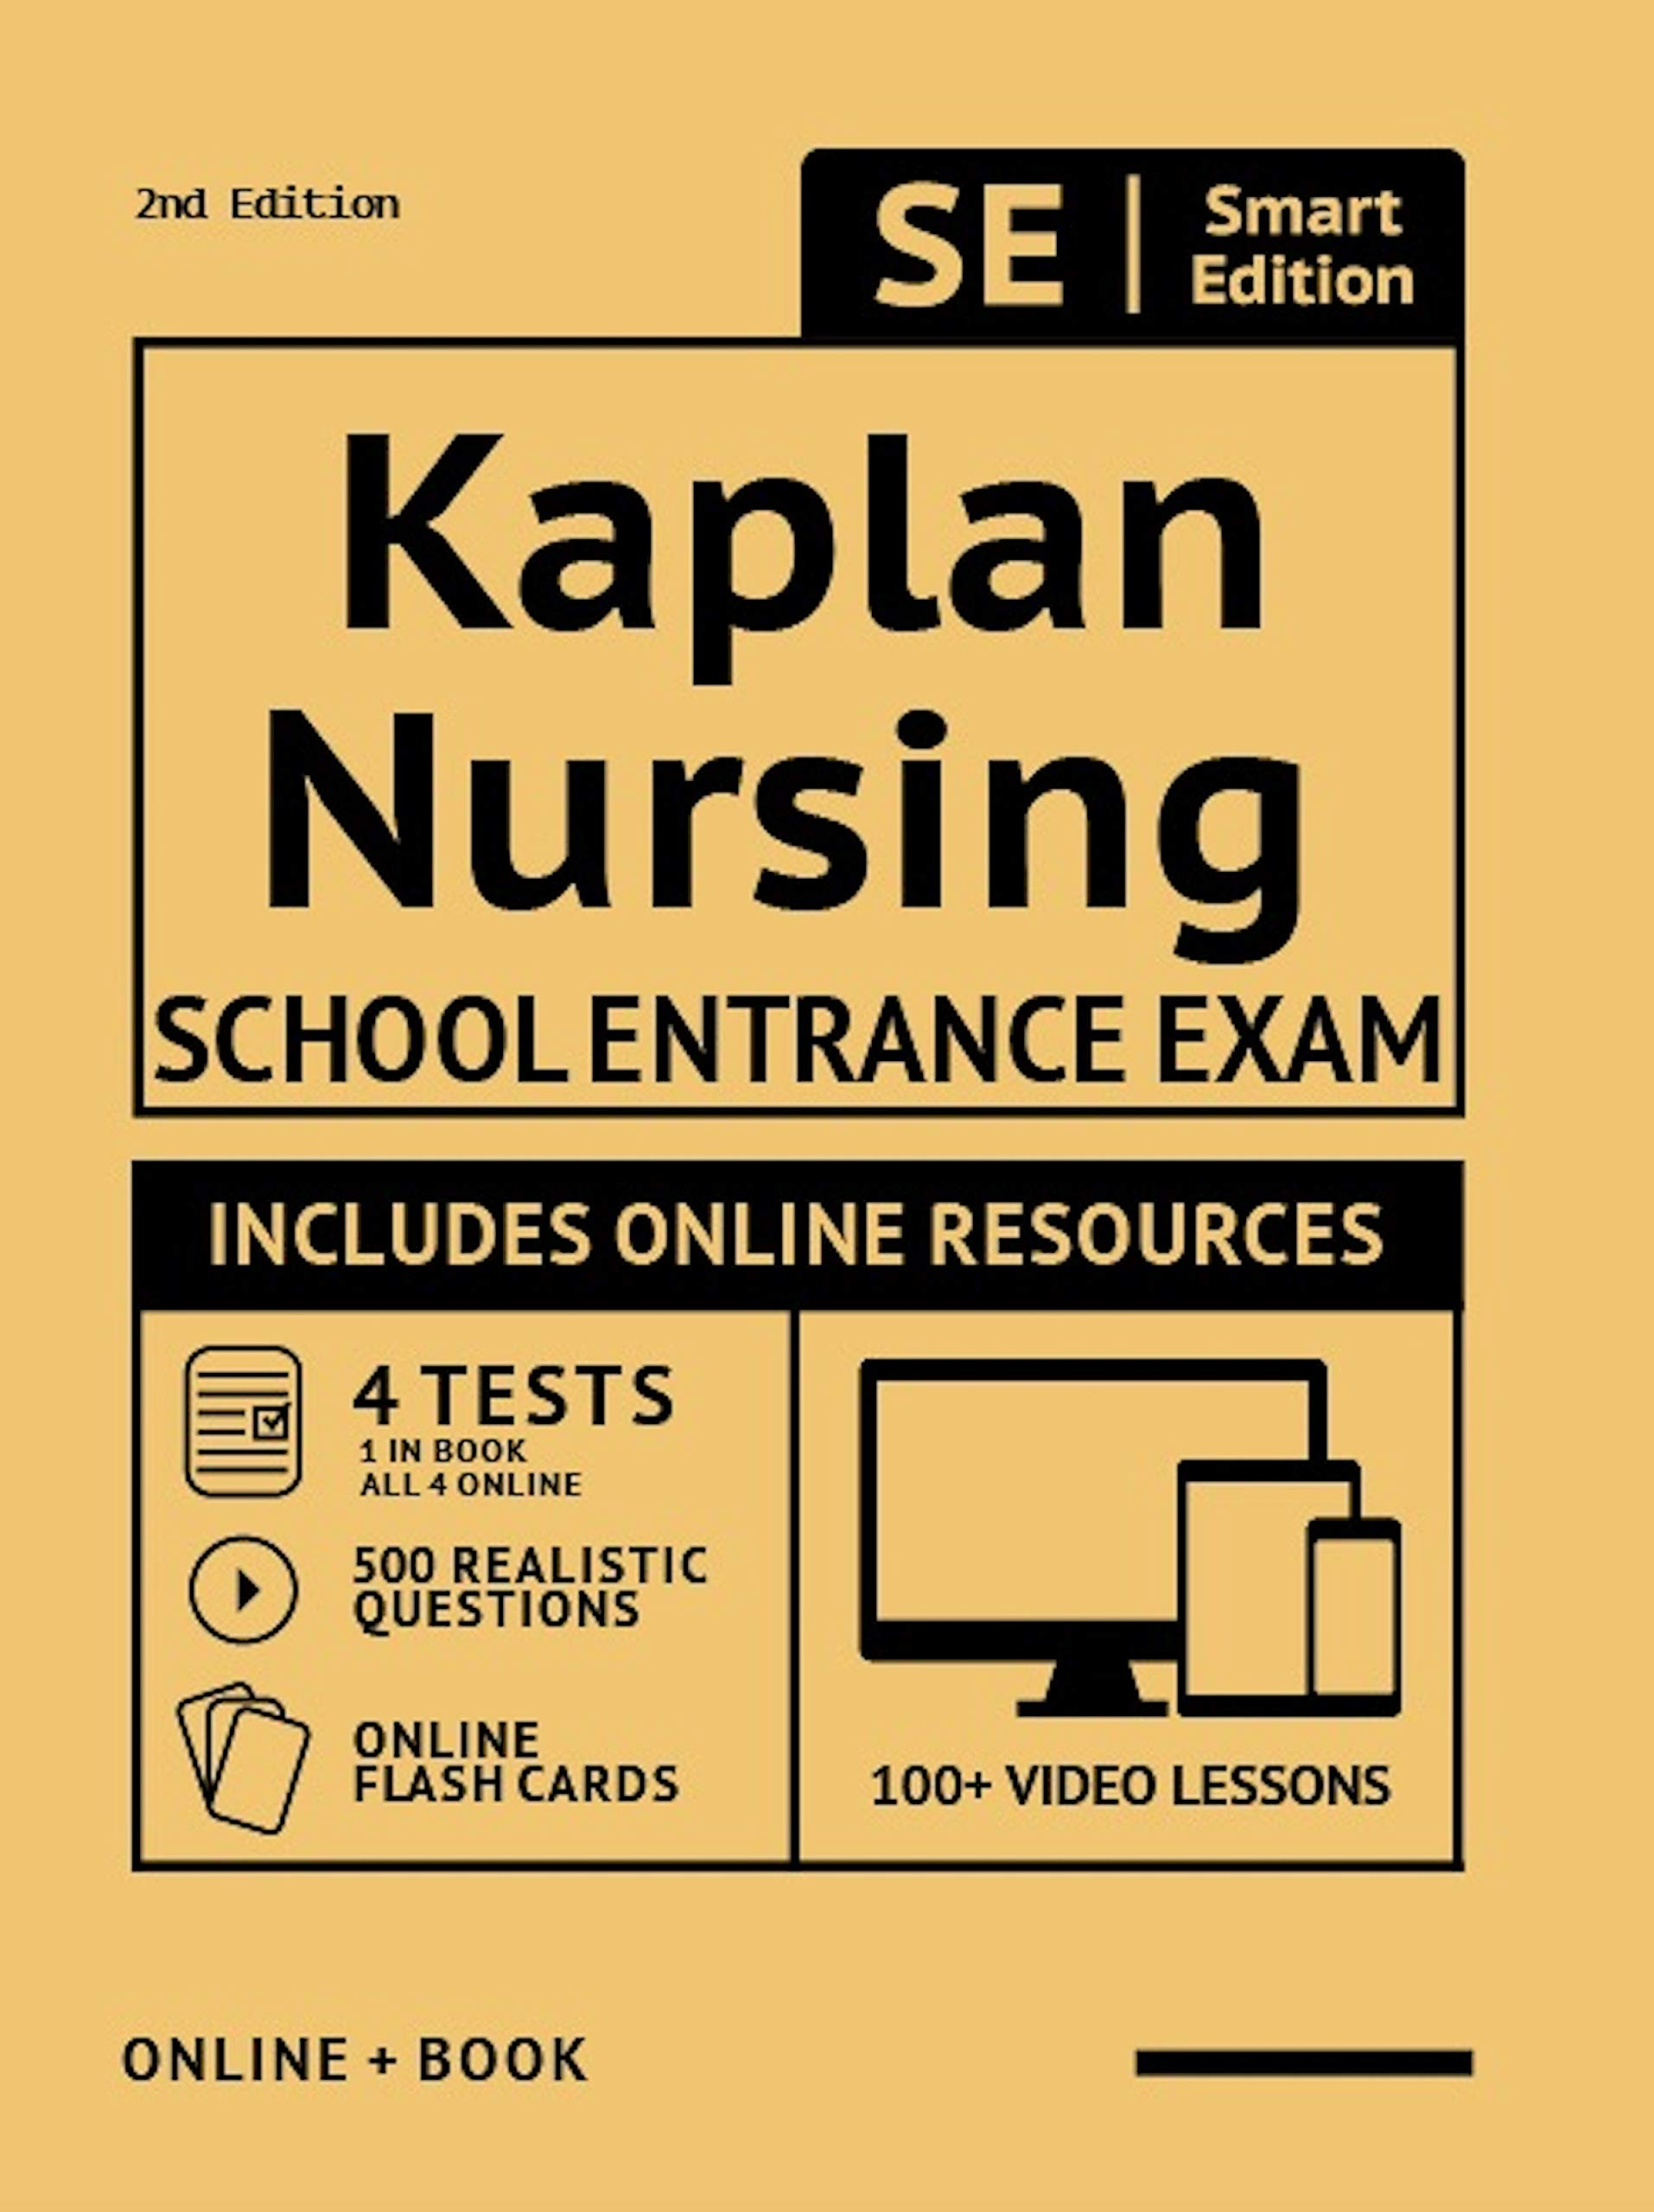 Kaplan Nursing School Entrance Exam Full Study Guide 2nd Edition: Study Manual with 100 Video Lessons, 4 Full Length Pract...